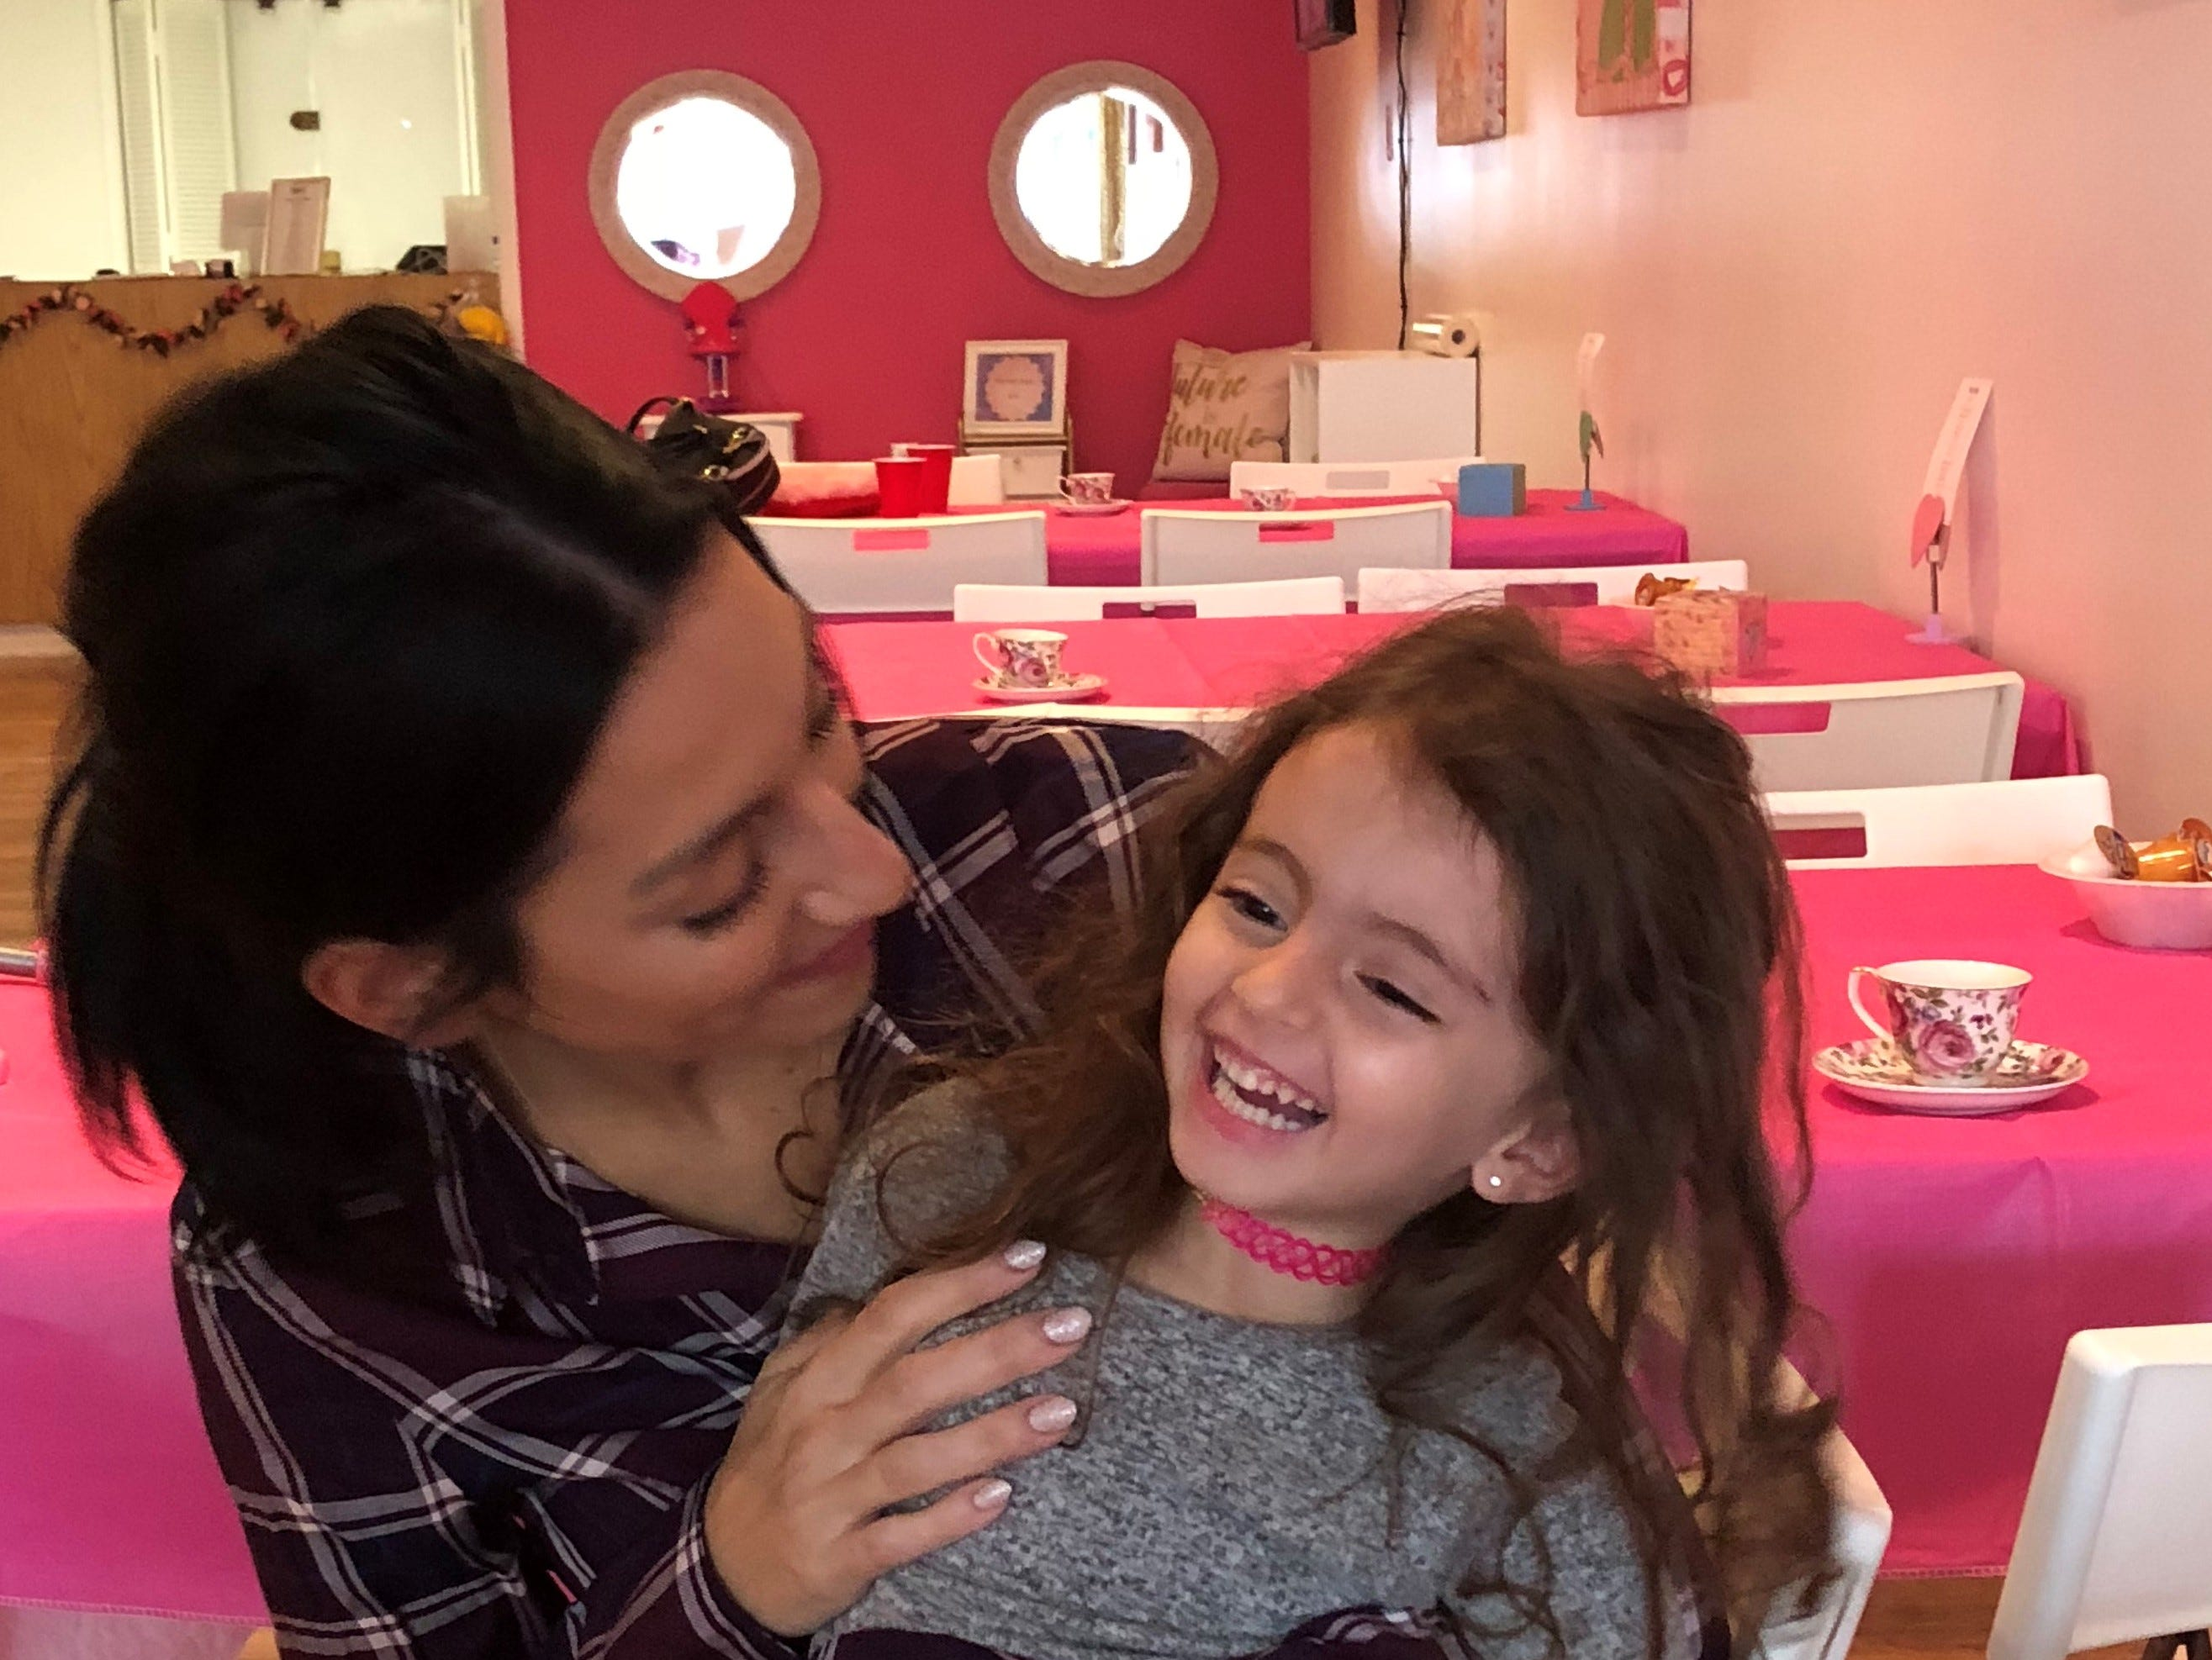 Melissa Fiorentino shares a laugh with her daughter Stella, 4, at Fiorentino's new doll store and party venue, Stella & Toni.